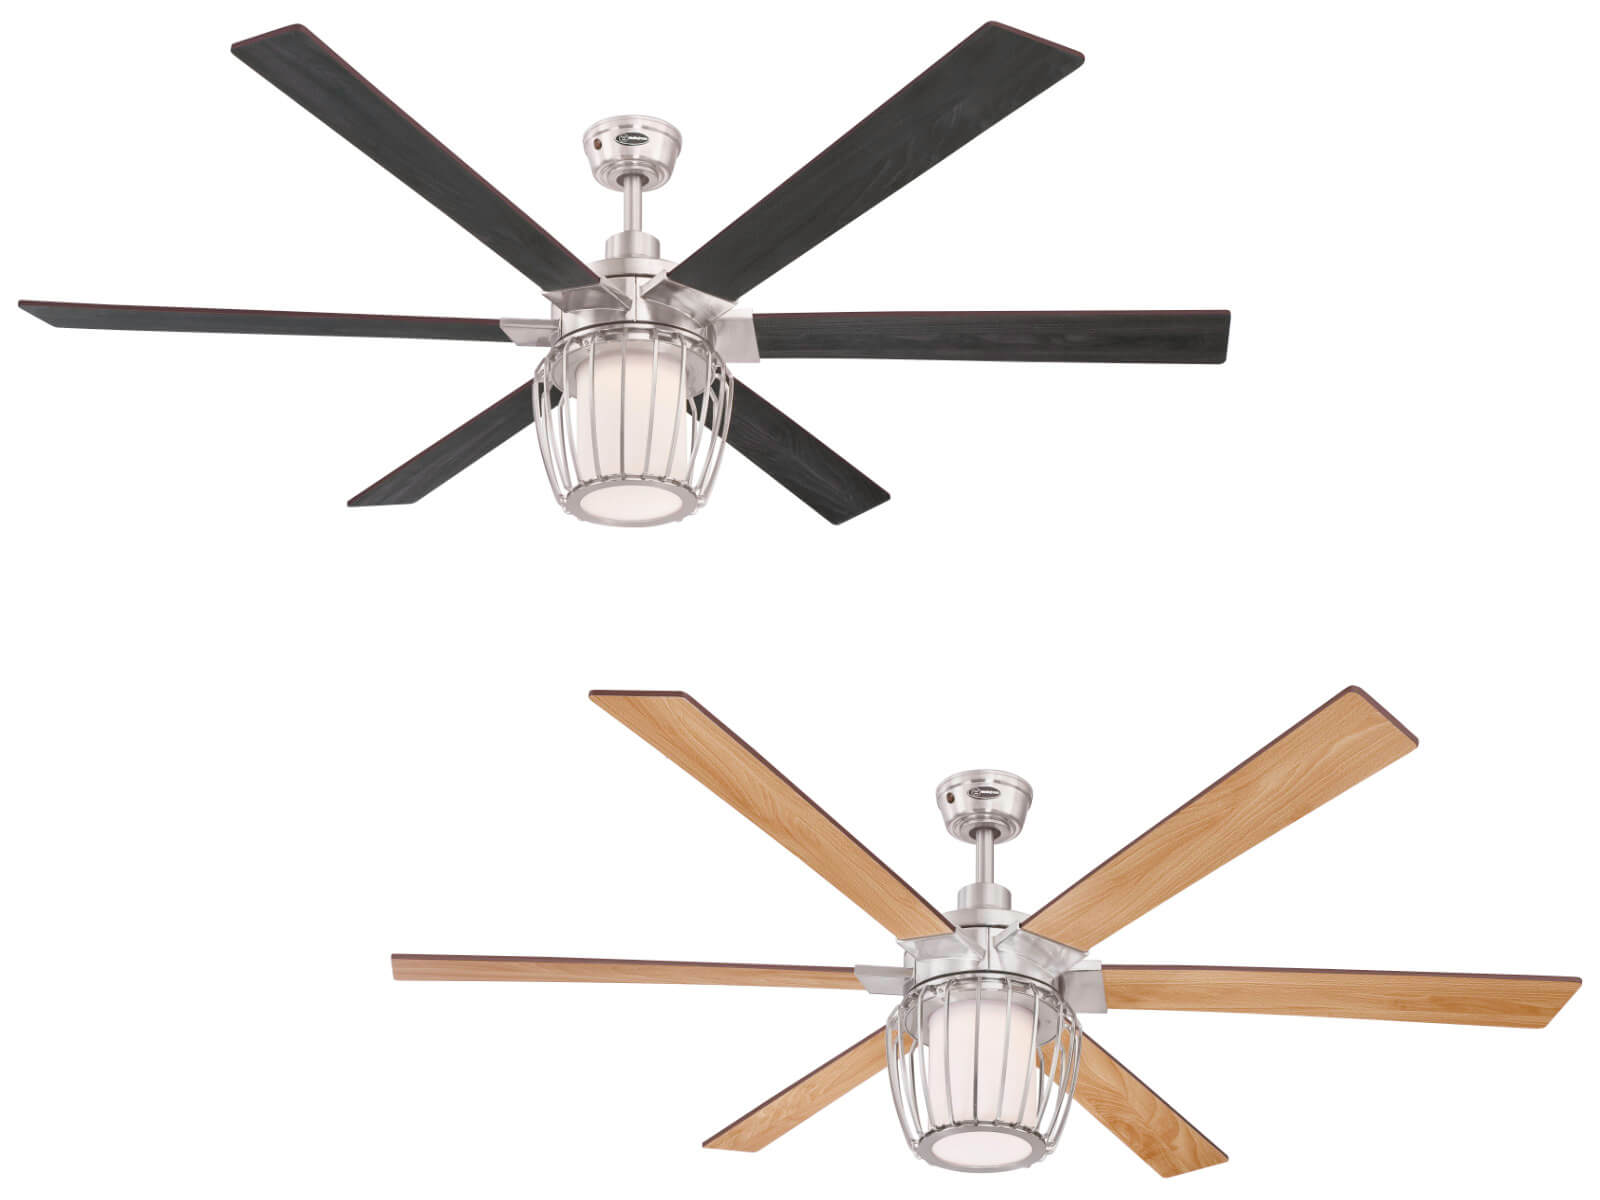 Ceiling Fan Willa 153cm 60 With Led Light And Remote Home Commercial Heaters Ventilation Ceiling Fans Uk